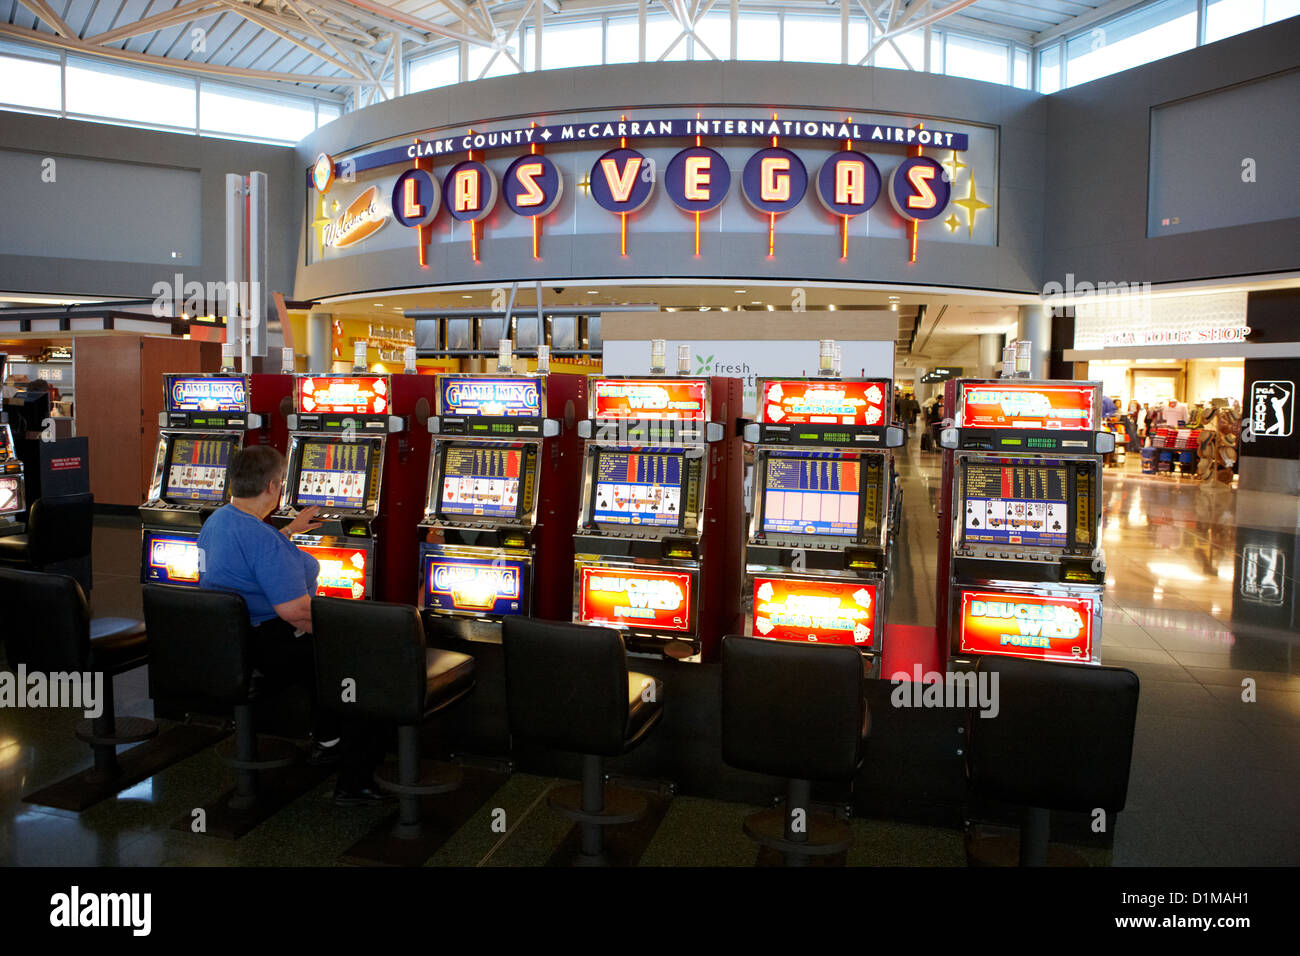 video poker gaming gambling machines in mccarran international airport Las Vegas Nevada USA - Stock Image